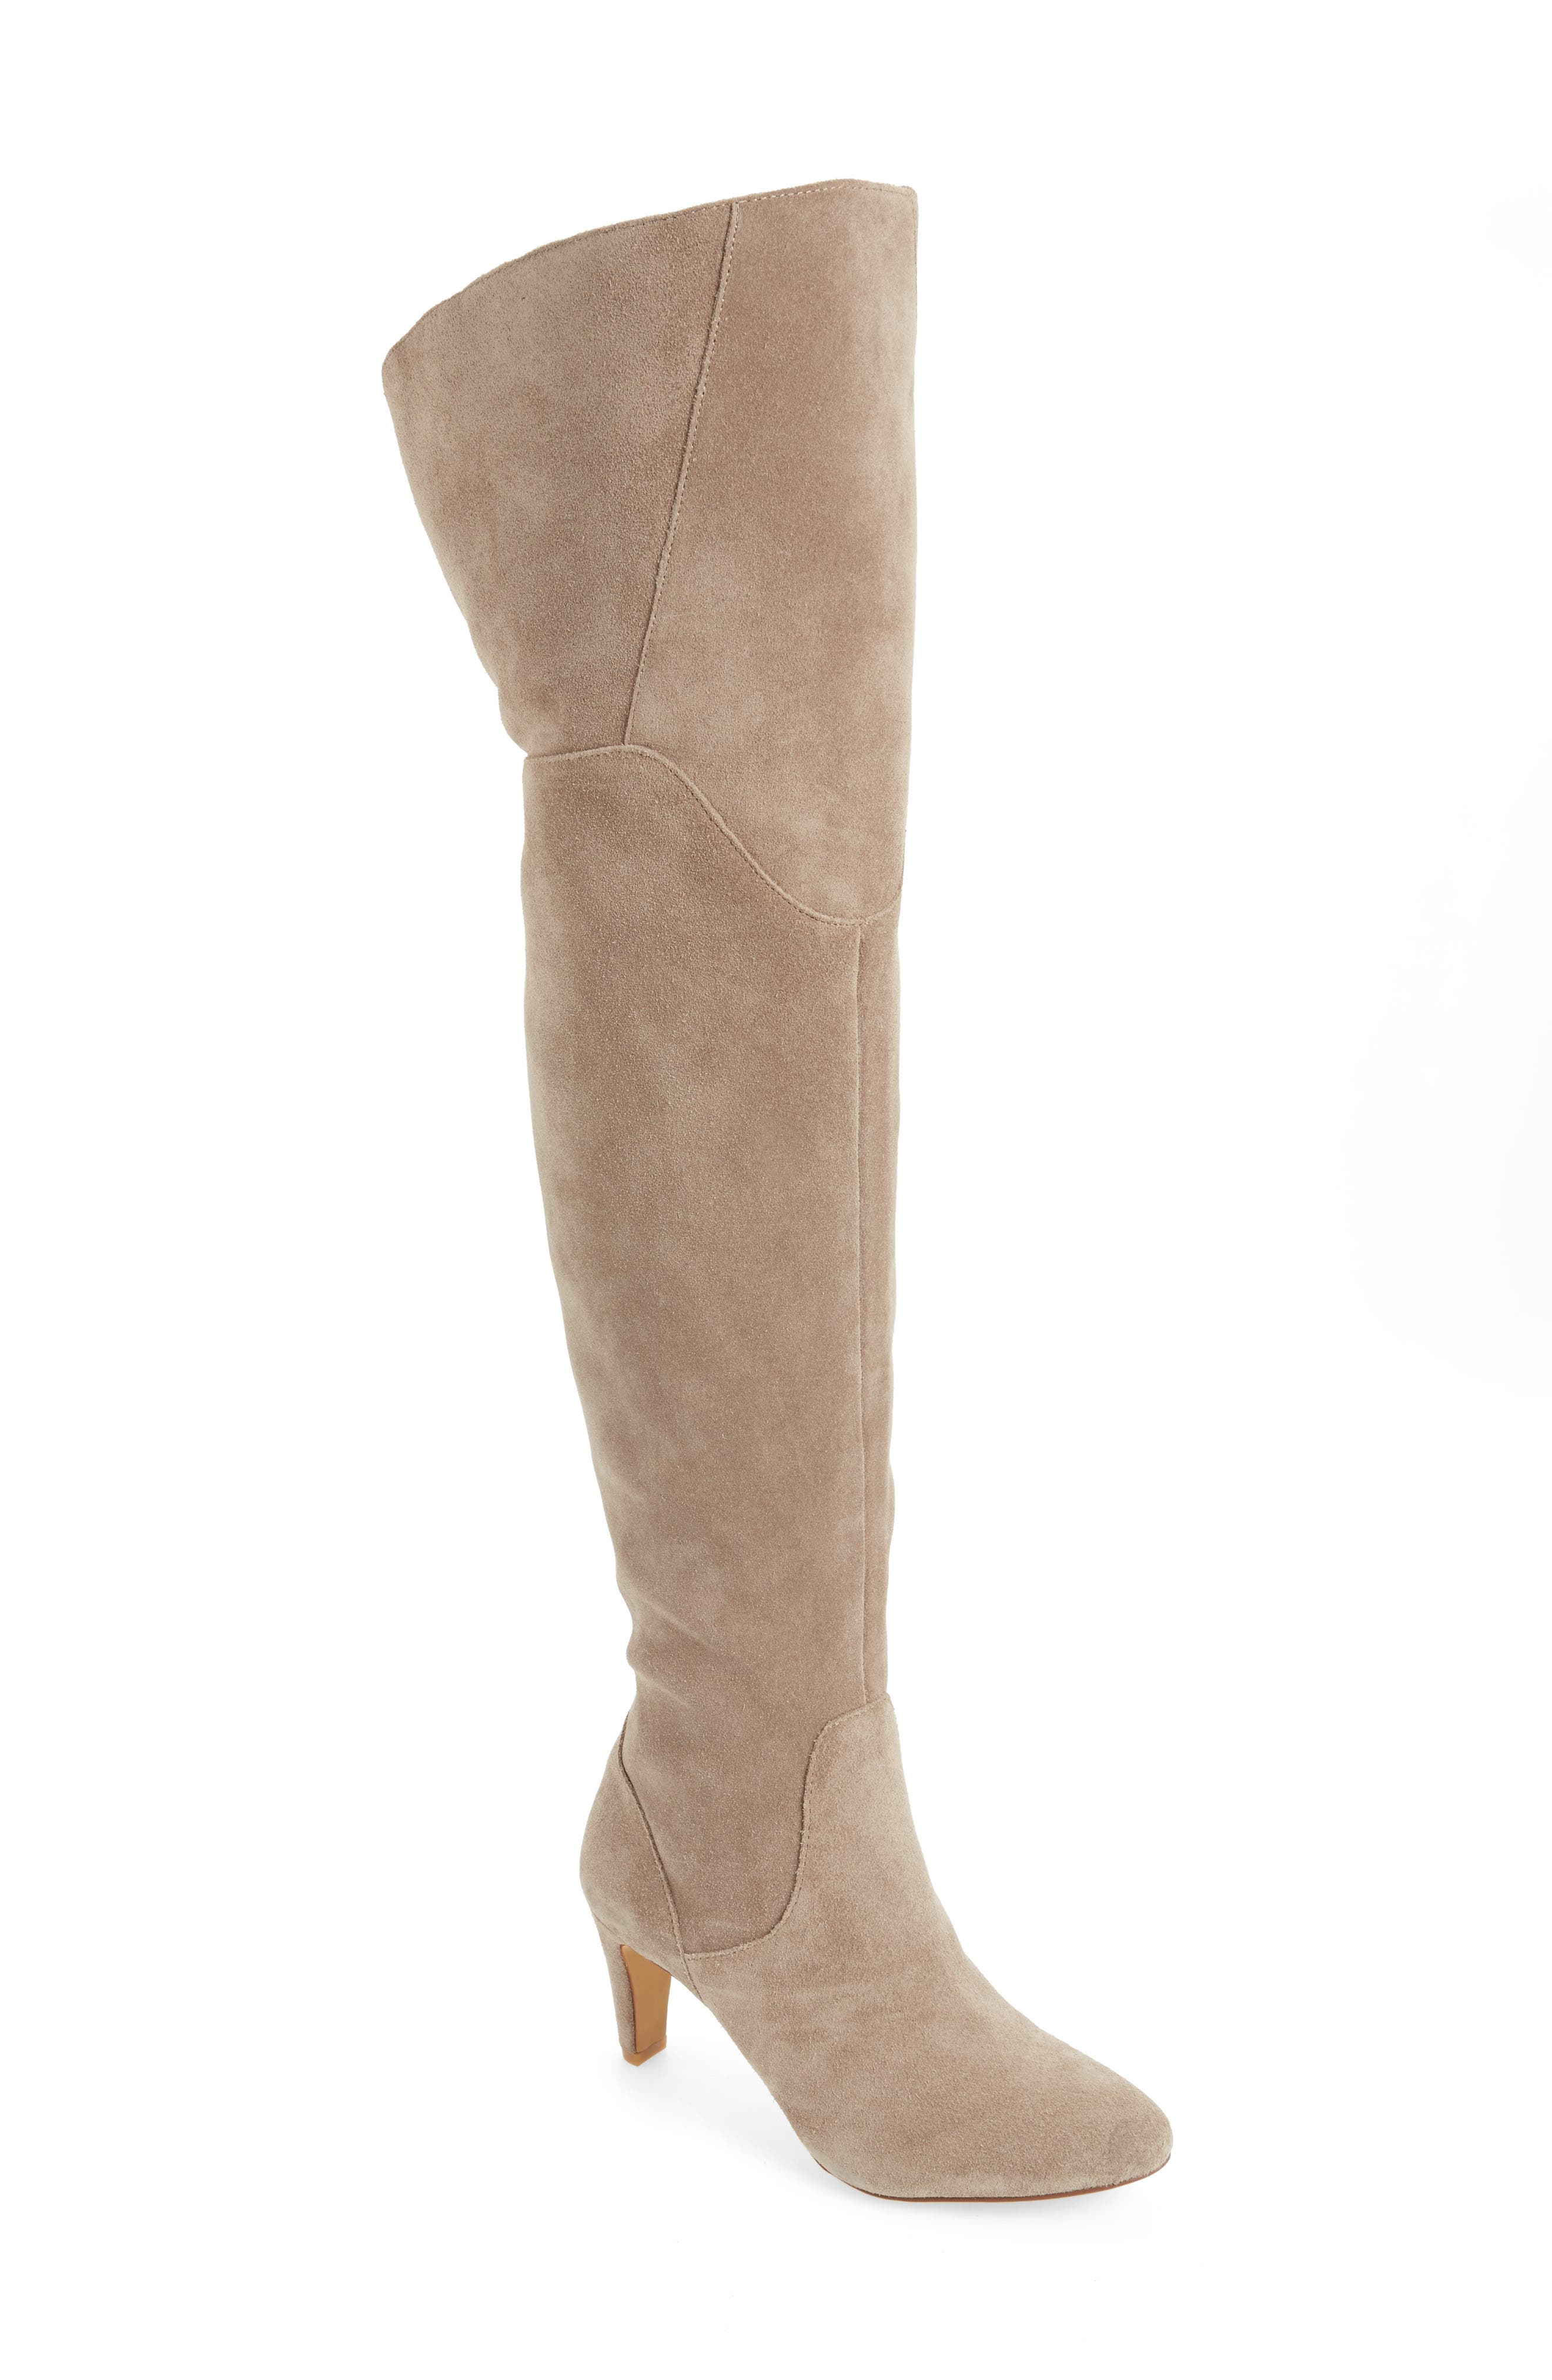 Armaceli Over the Knee Boot,                             Main thumbnail 3, color,